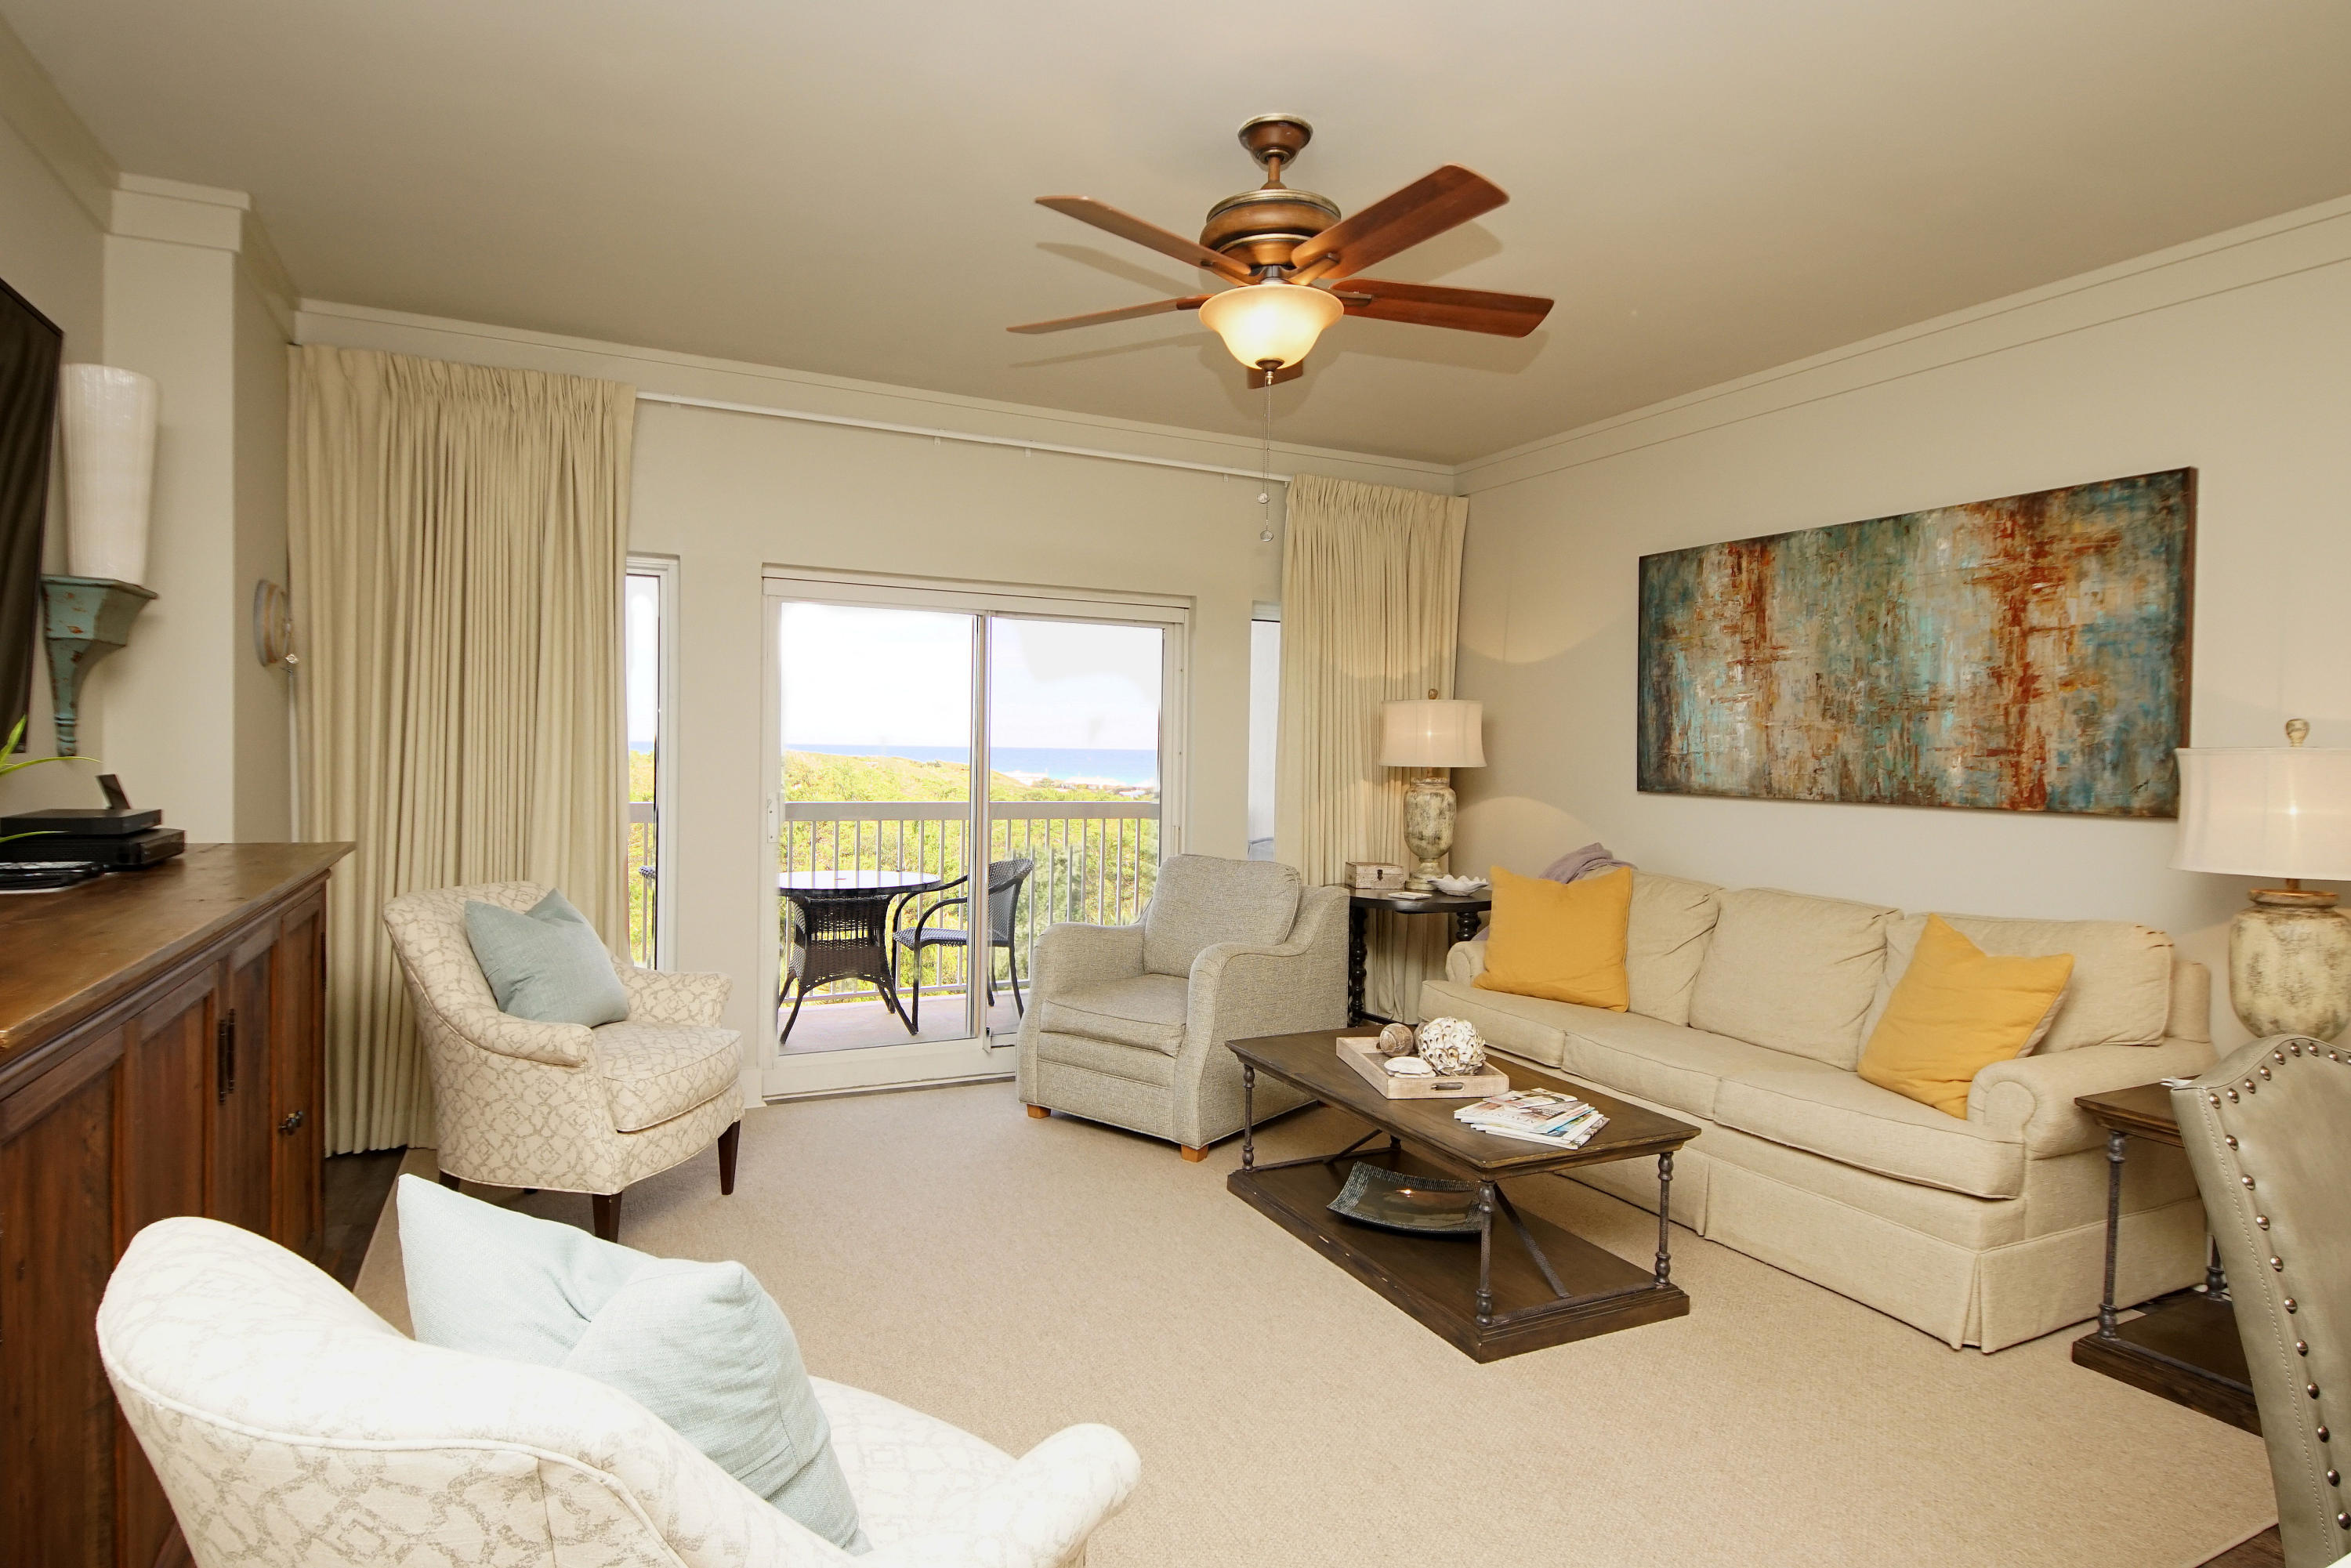 Listed for $609,000, 509 Summit at Tops'l is a gulf view corner unit 3 bedroom 3 bath condominium th